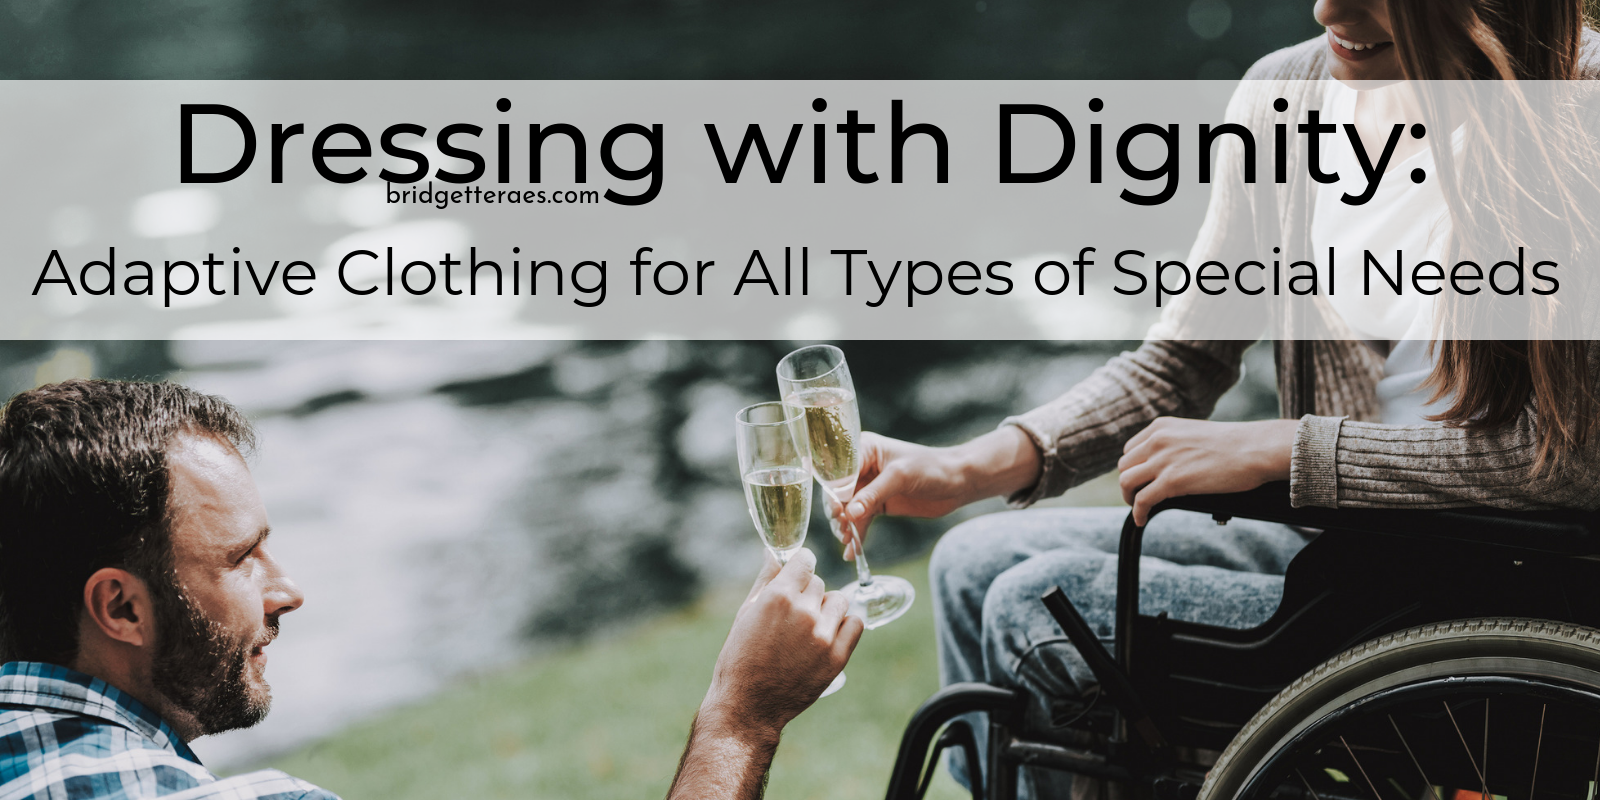 Dressing with Dignity: Adaptive Fashion for All Types of Special Needs